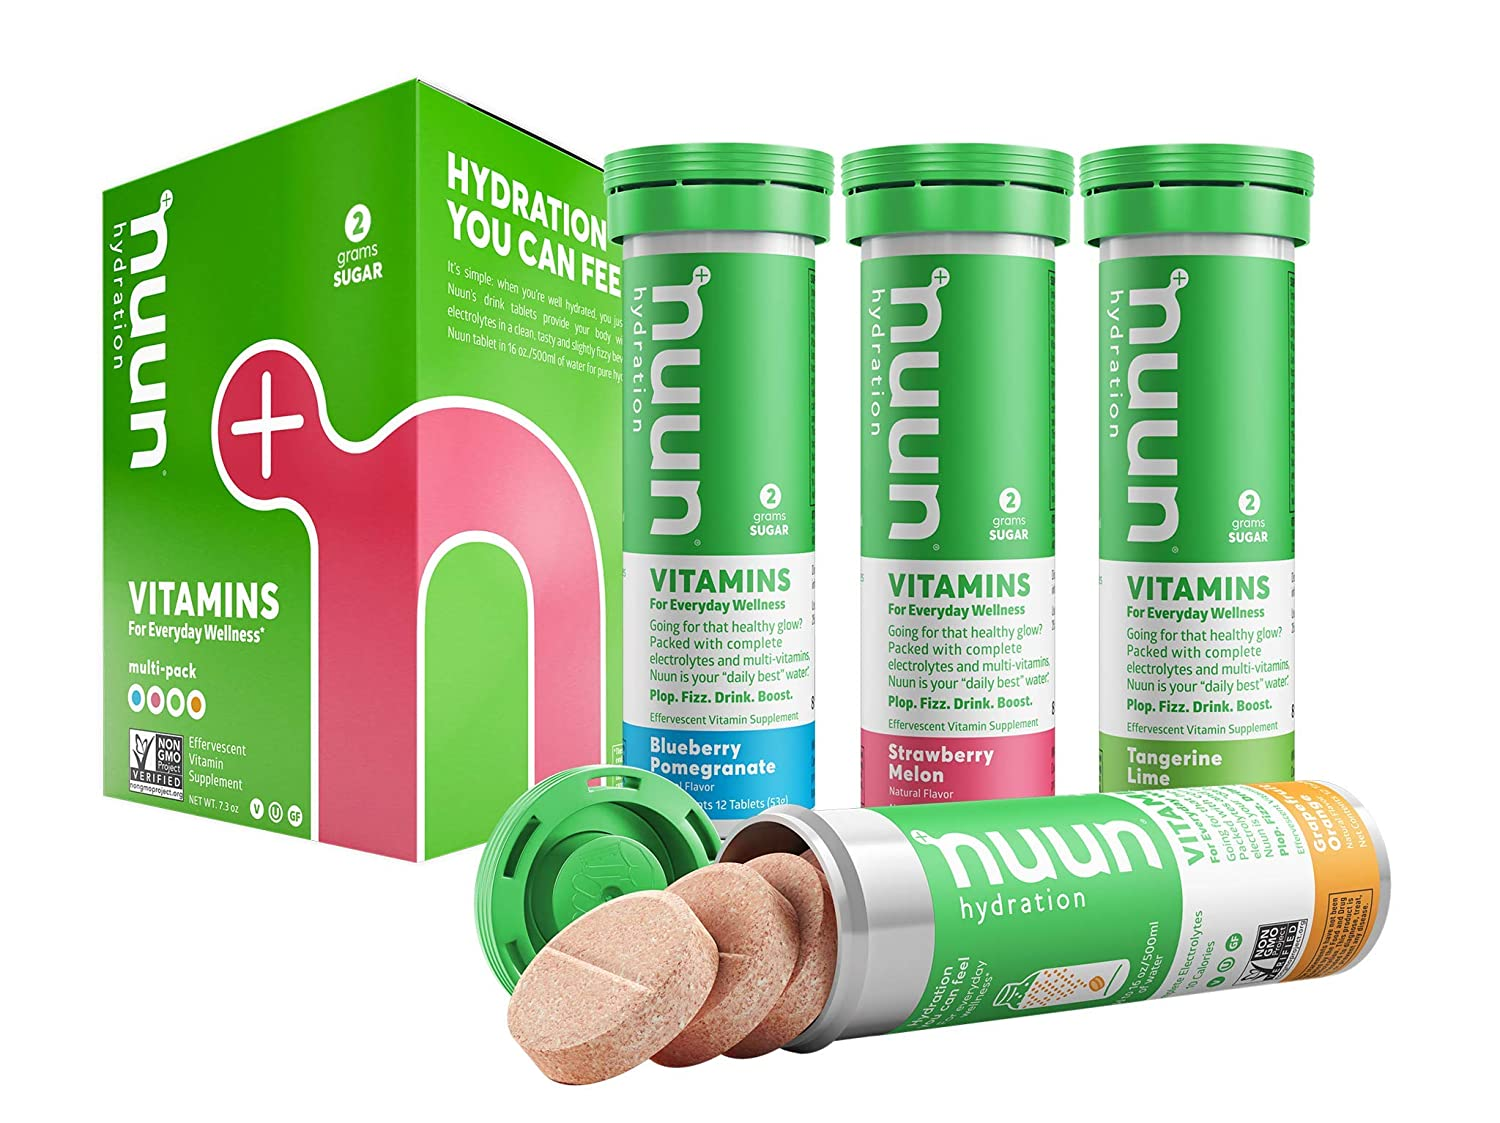 Nuun Hydration: Vitamin + Electrolyte Drink Tablets, Mixed Fruit Flavor  Pack, Box of 4 Tubes (48 servings),